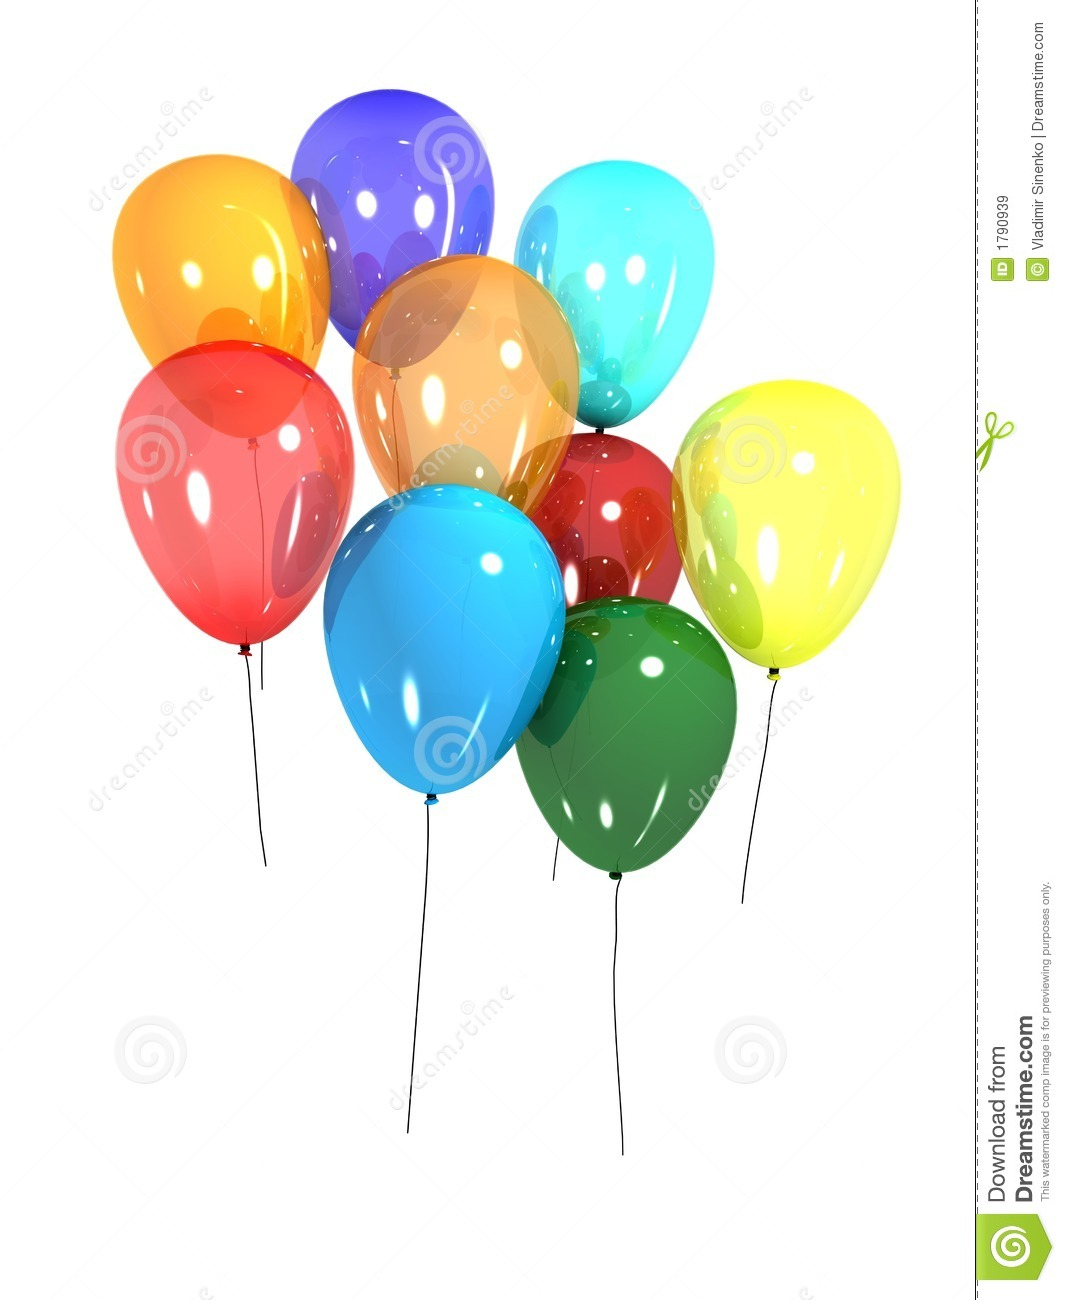 3d balloons stock illustration